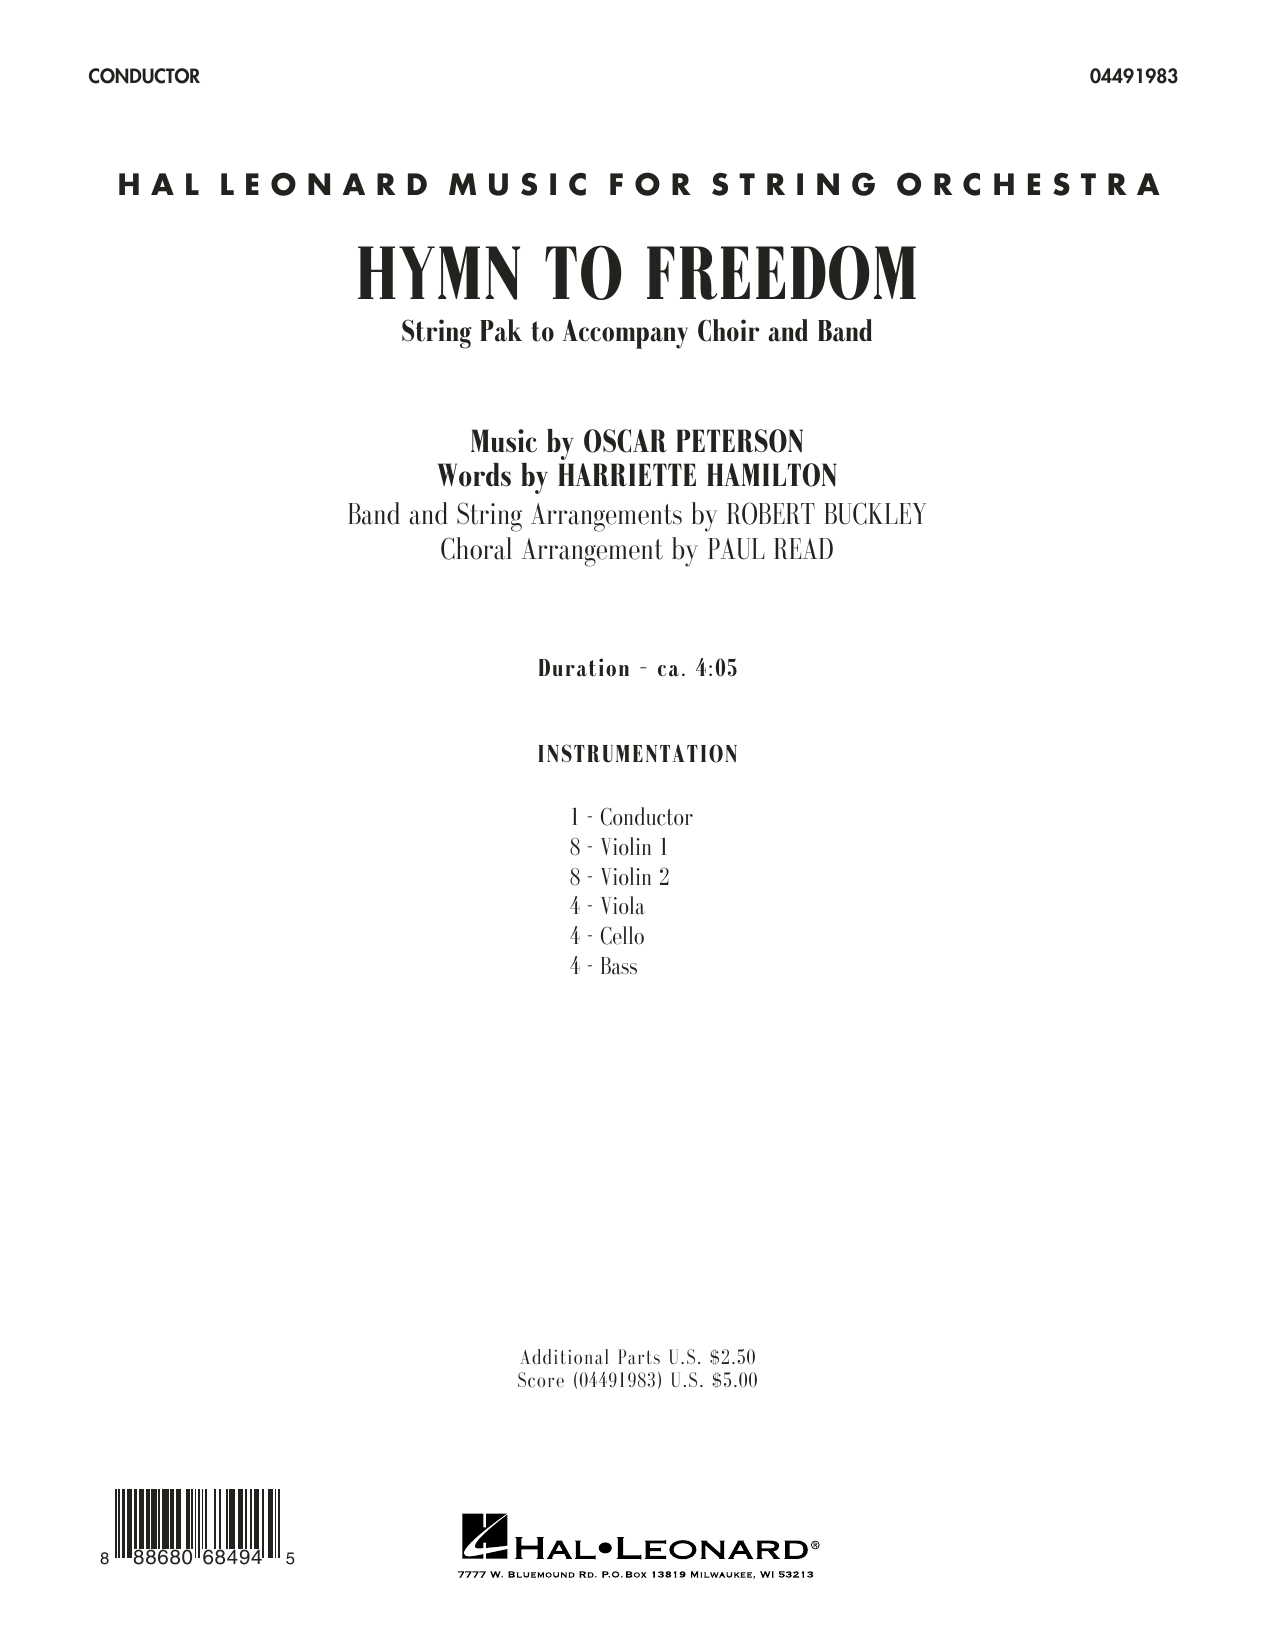 Paul Read - Hymn to Freedom - Conductor Score (Full Score)